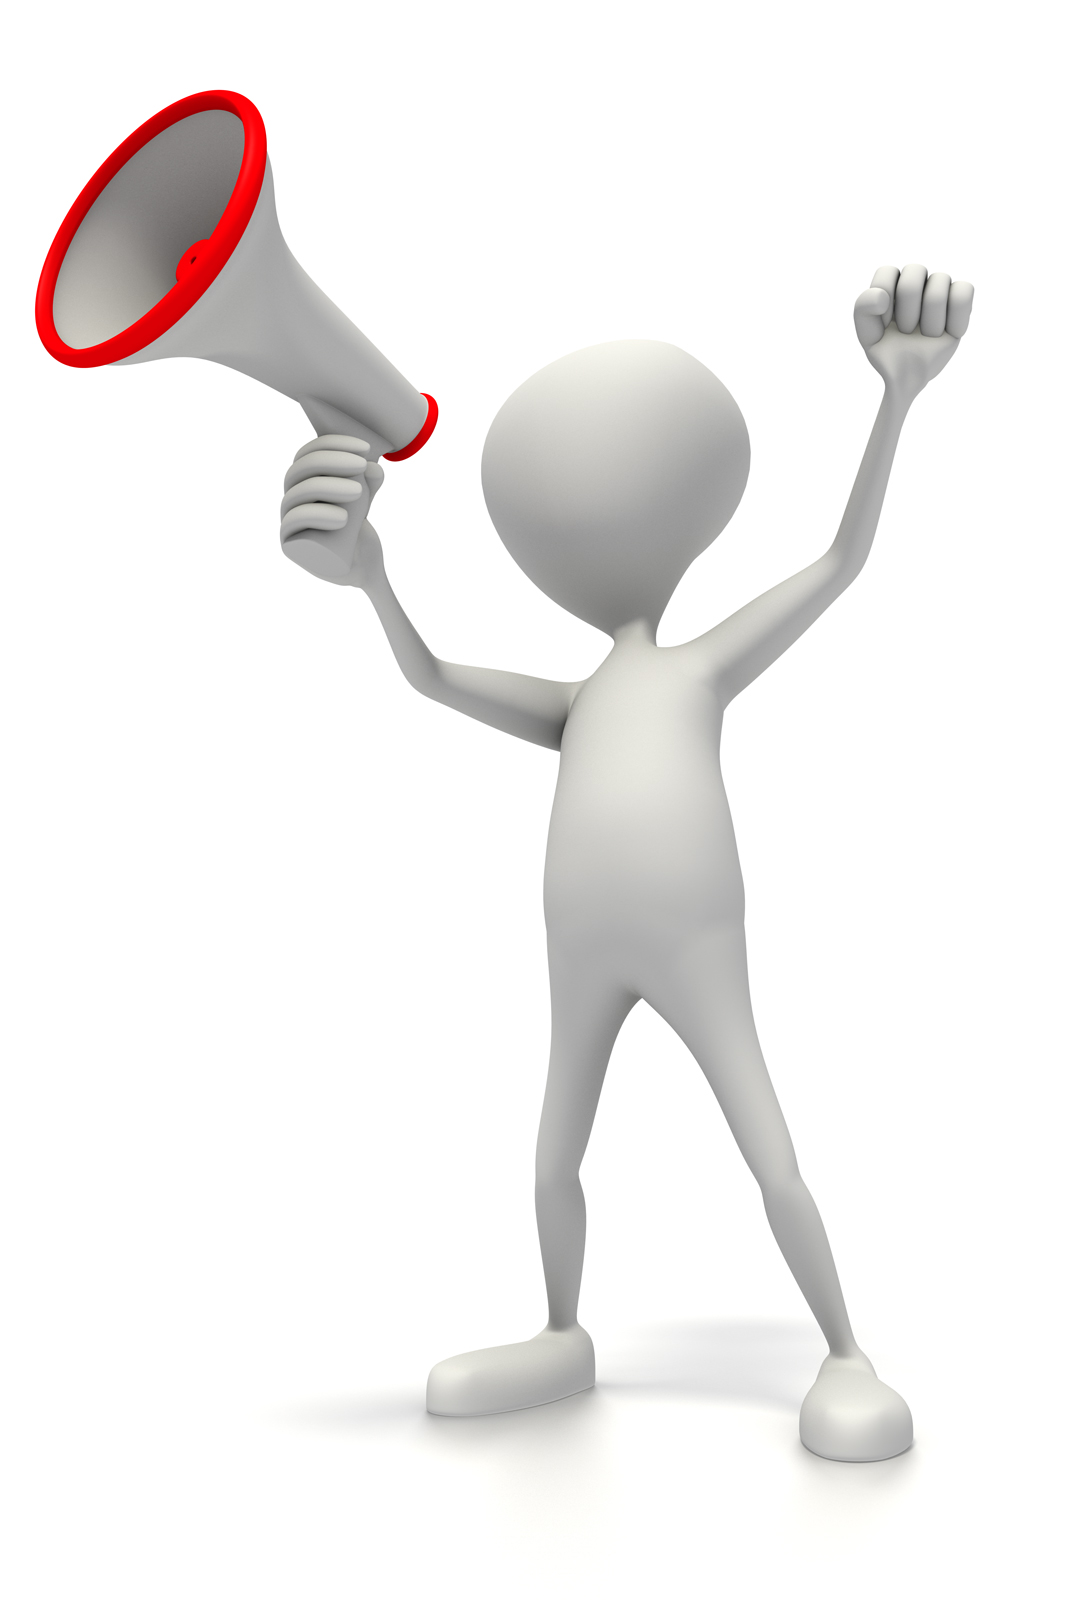 Free Megaphone, Download Free Clip Art, Free Clip Art on.